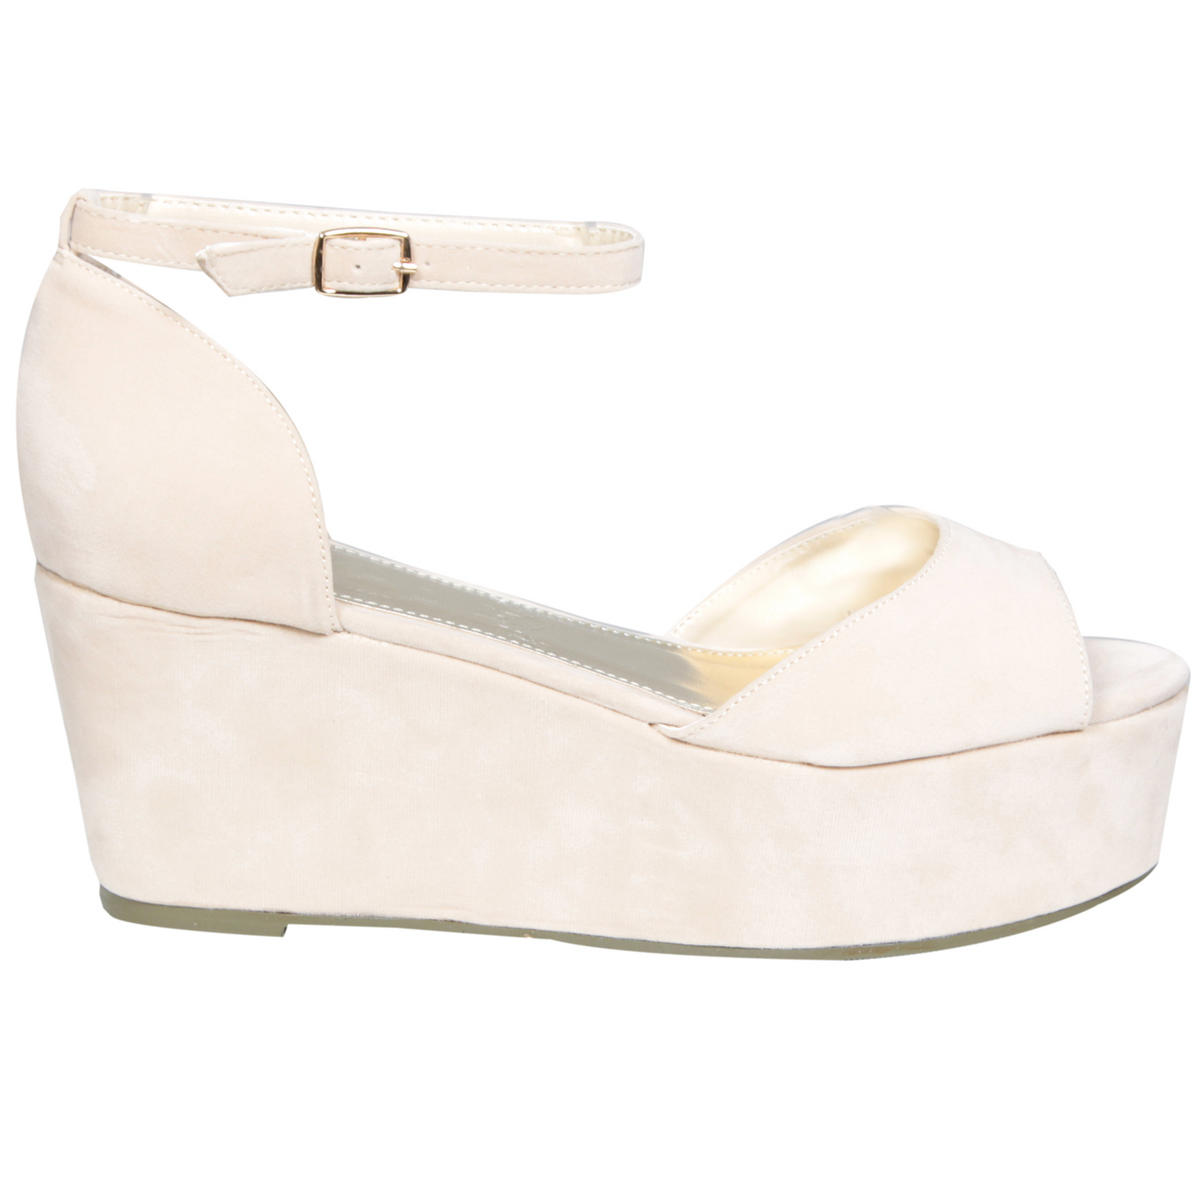 Cream Peeptoe Ankle Strap Flatform Preview